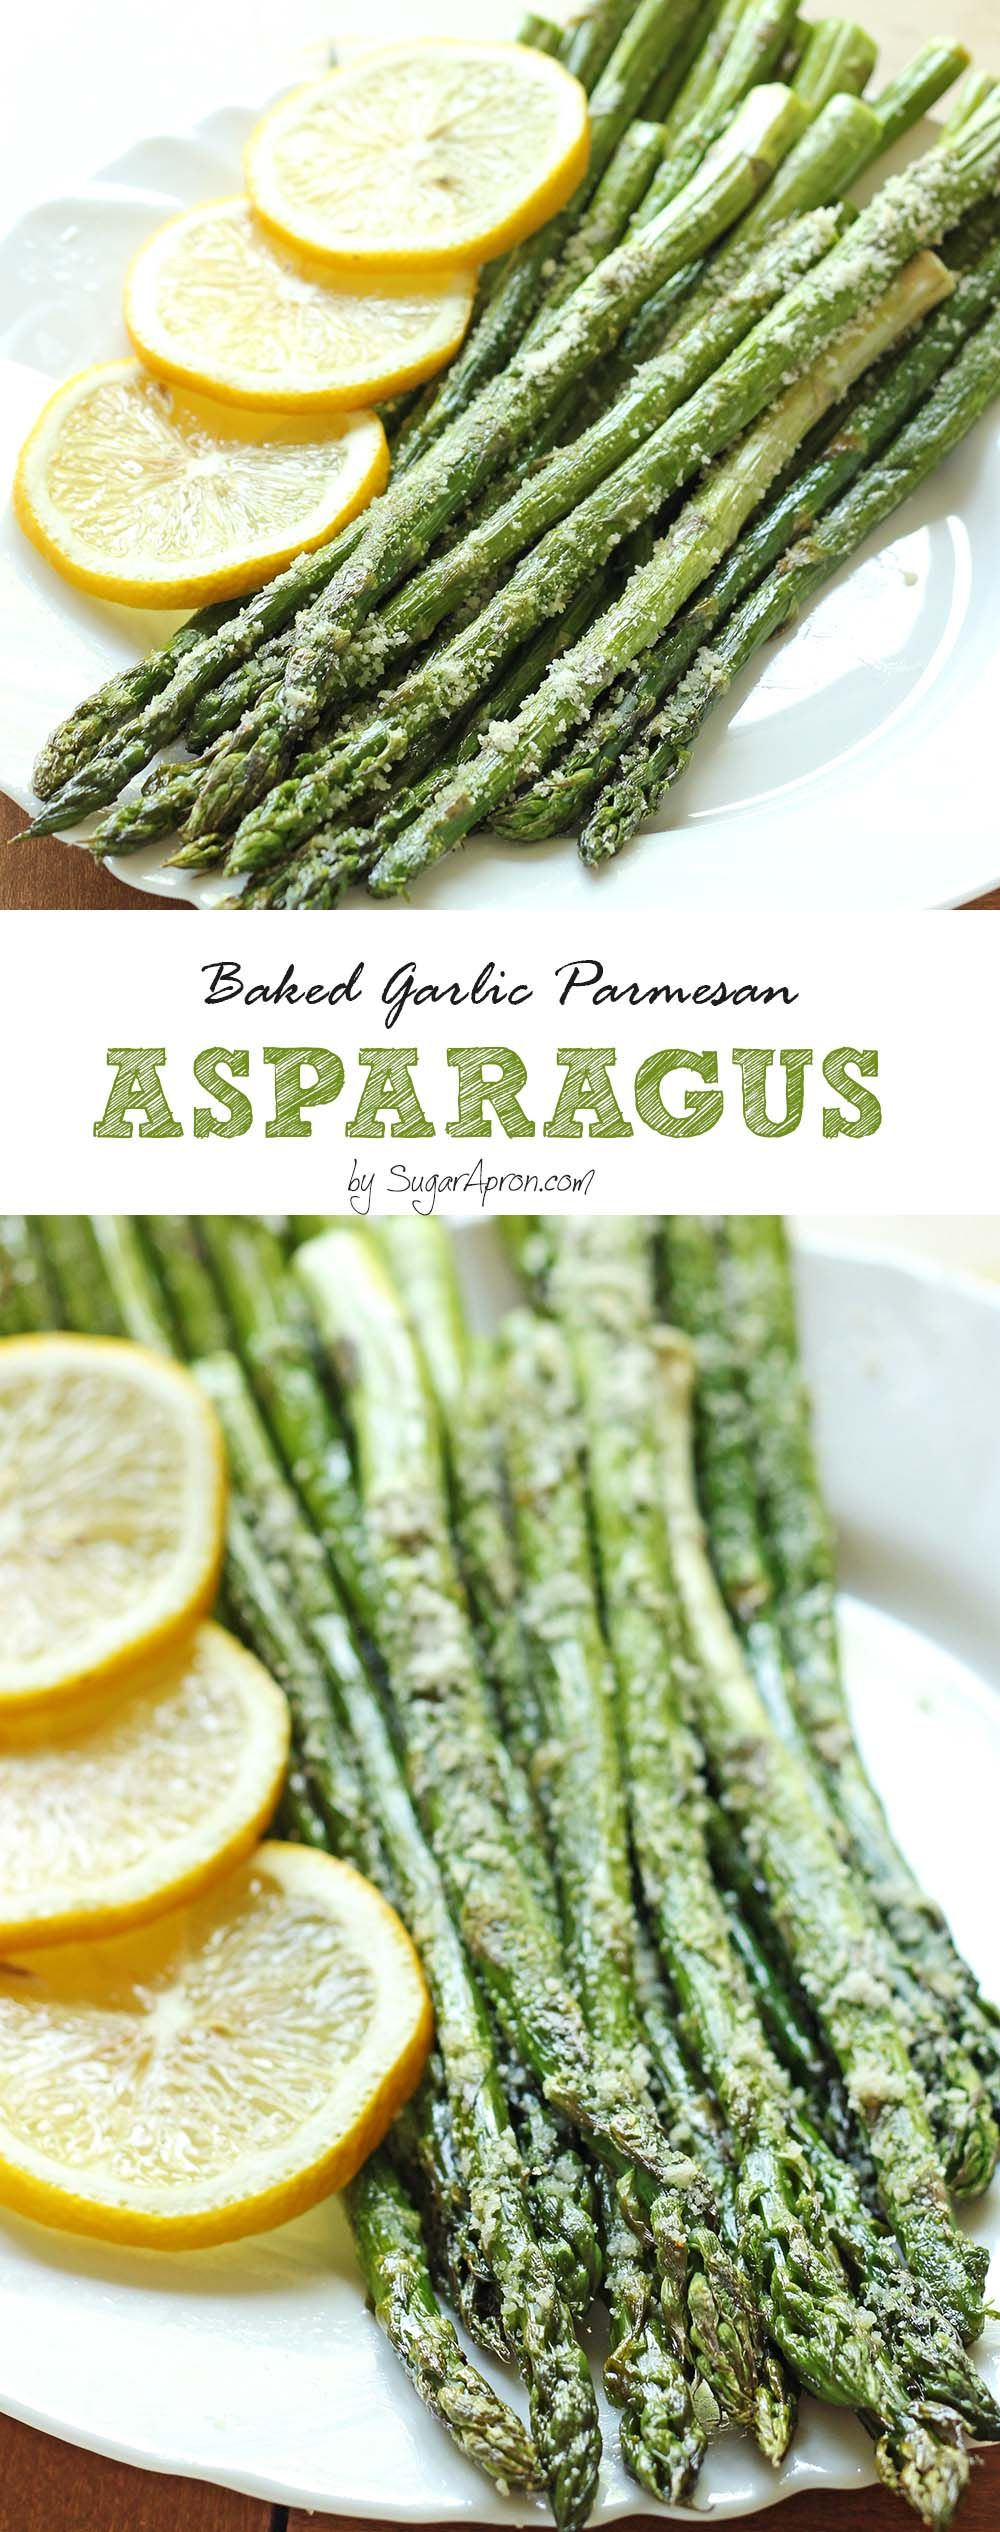 A Perfect Side Dish, Fresh Asparagus Baked To Perfection And Topped With  Parmesan And Garlic